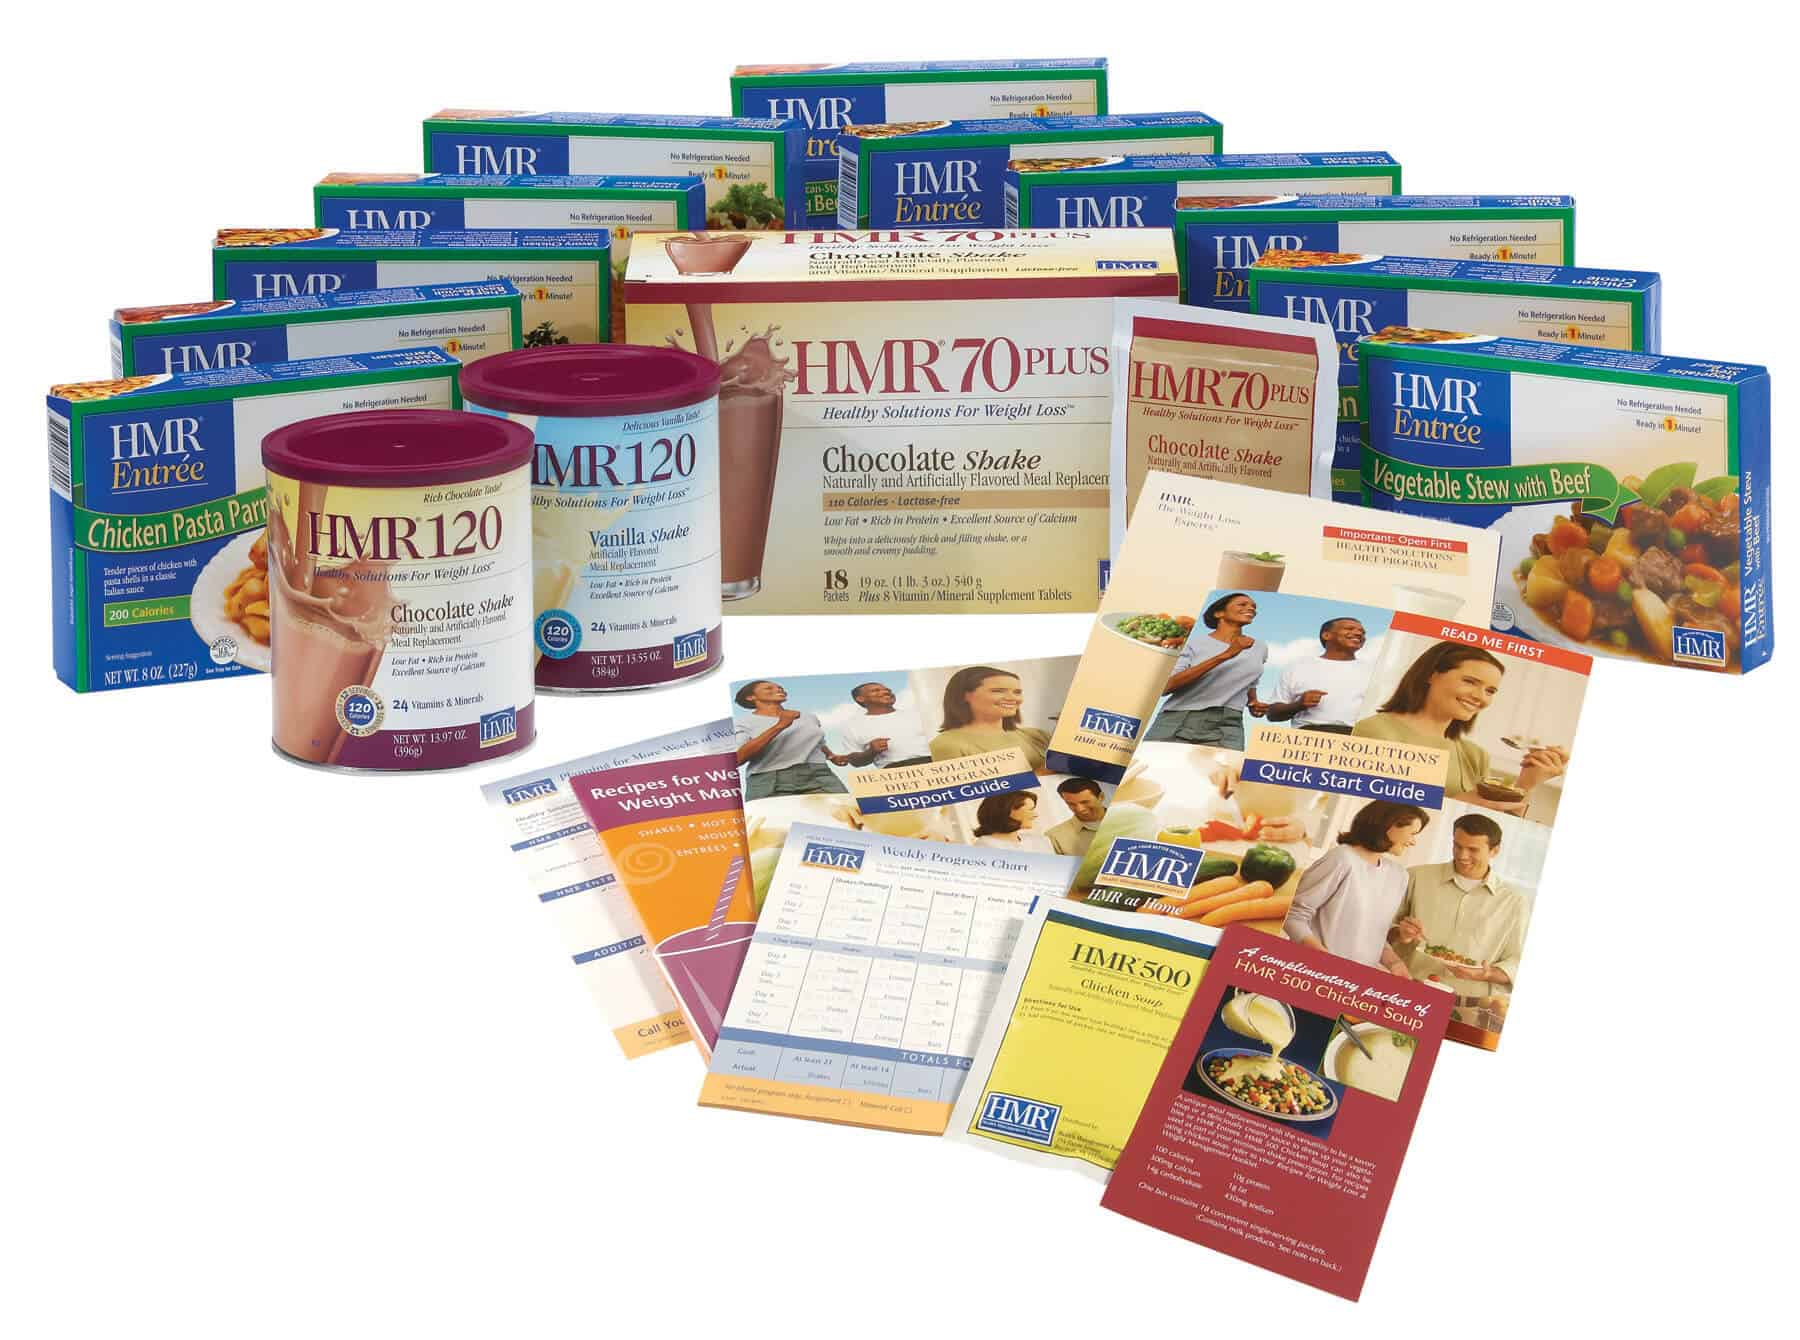 HMR Diet Review | Does HMR Diet Work?, Side Effects, Review